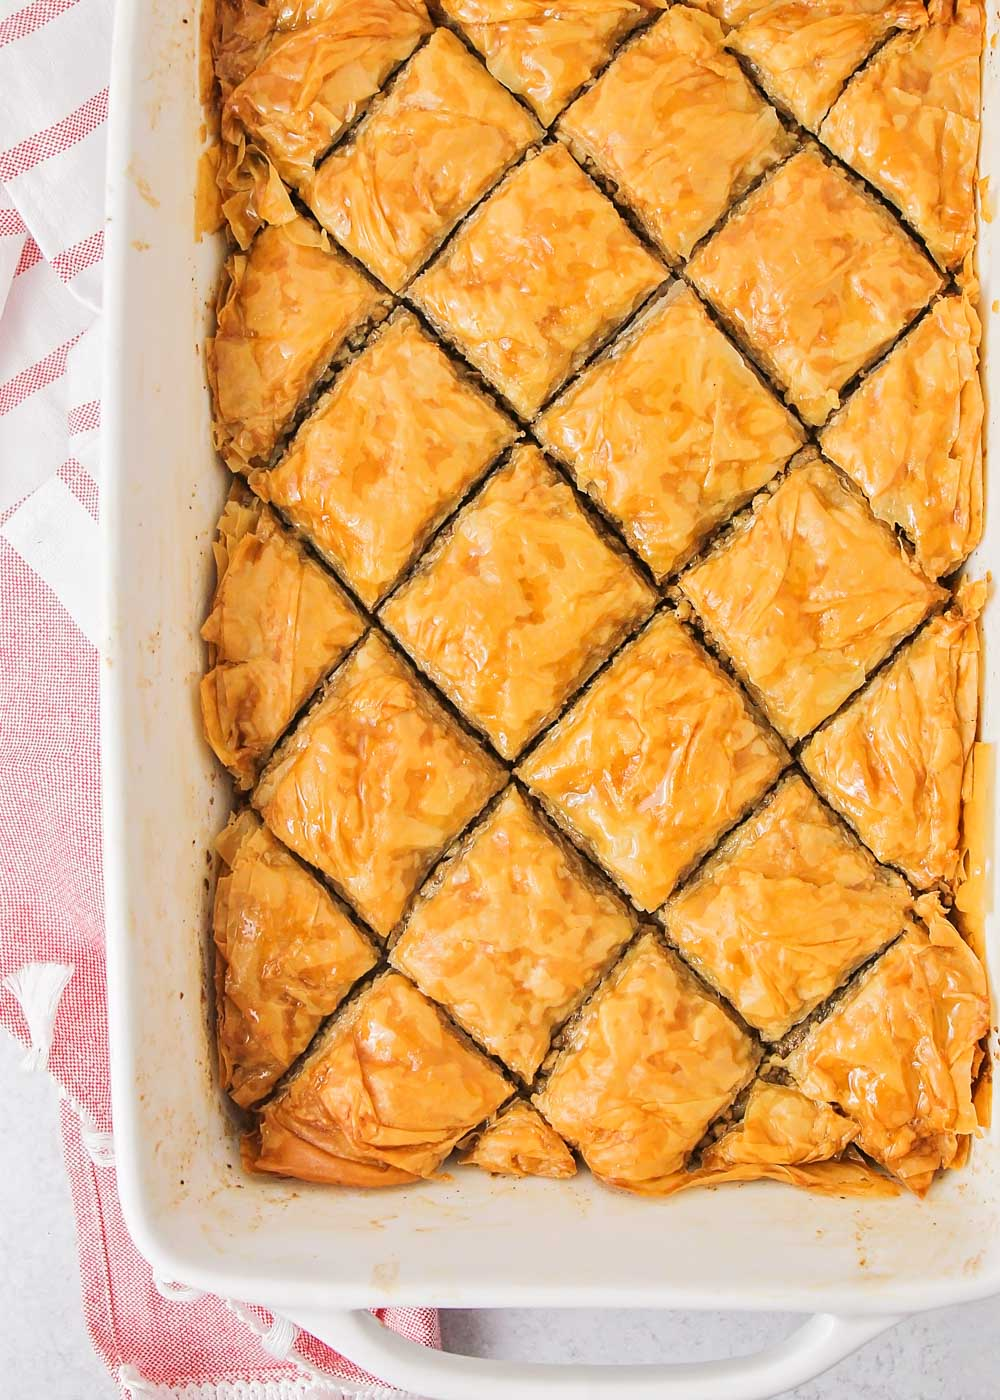 Baklava in a serving dish